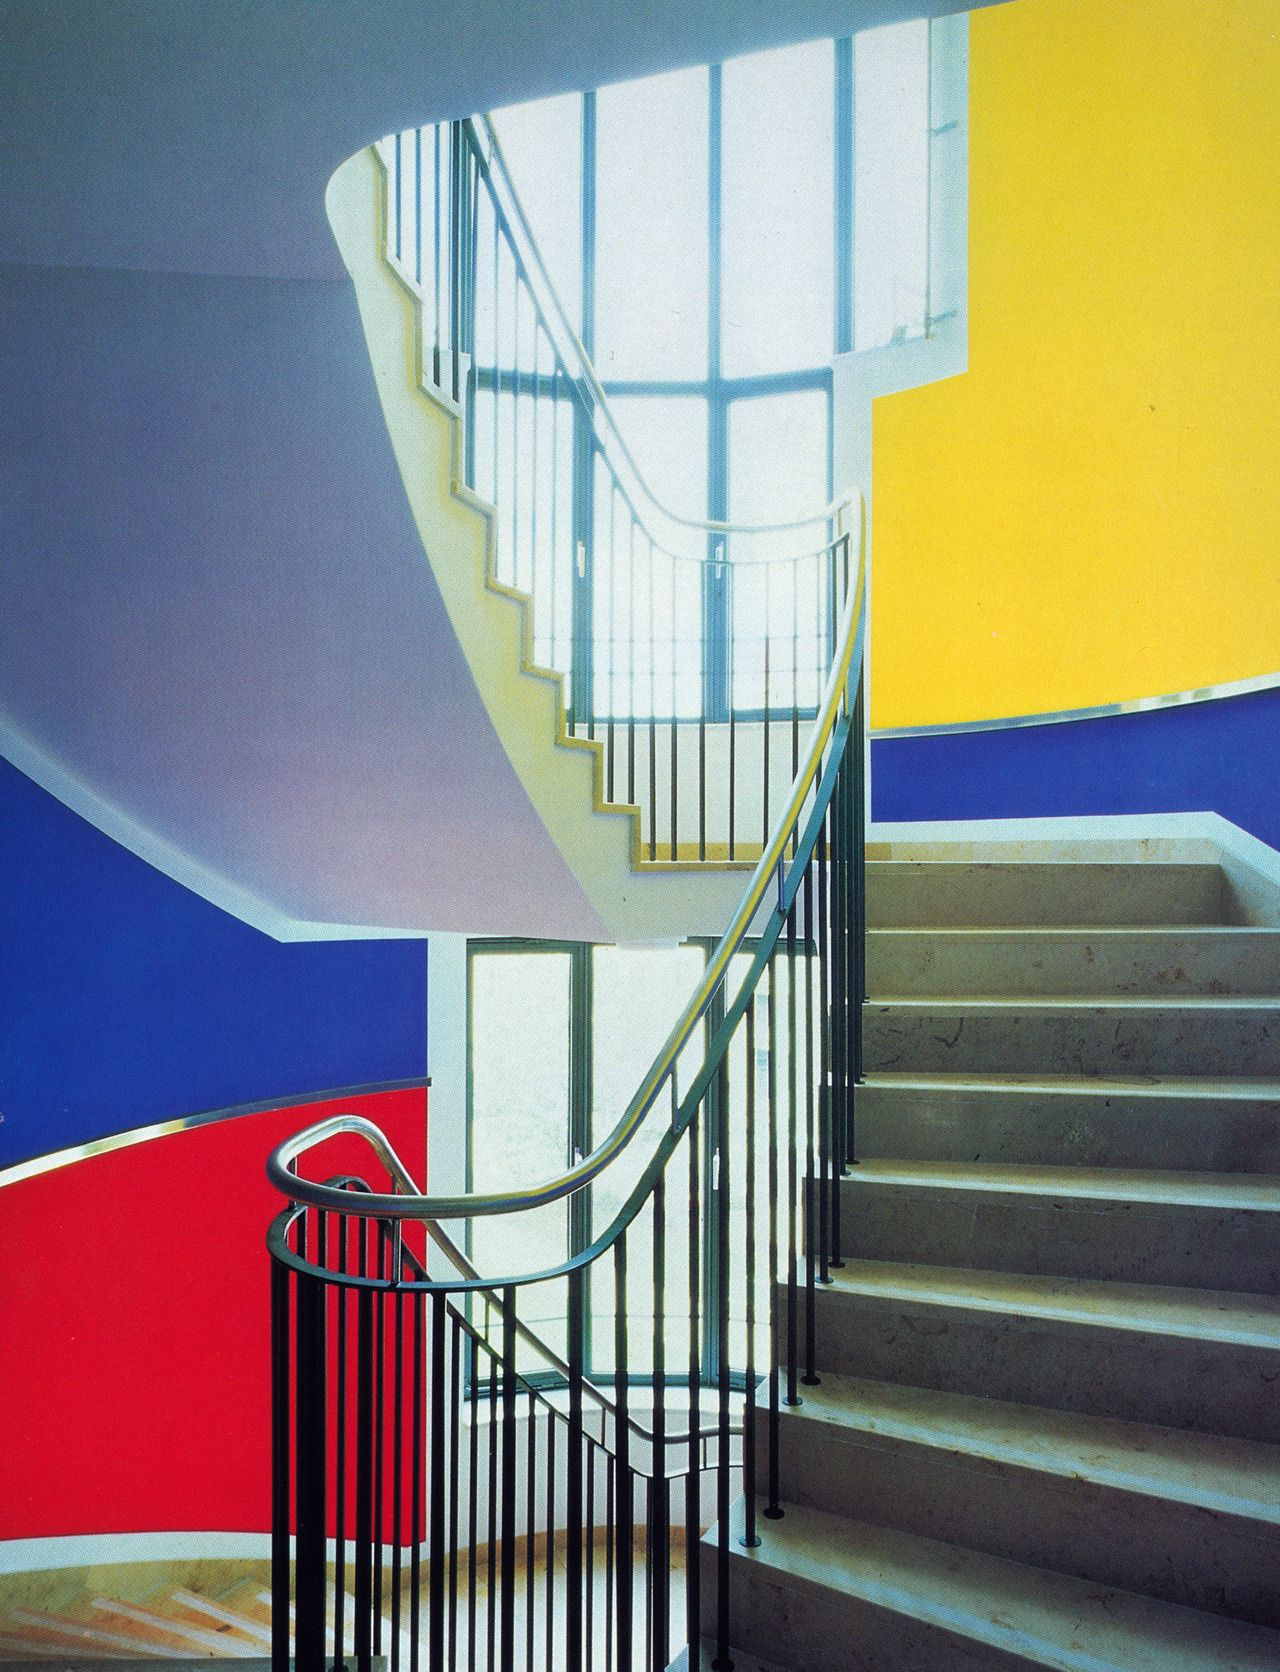 Retro Bank Design.Aesthetic German Architect Germany Stairs Paint Office